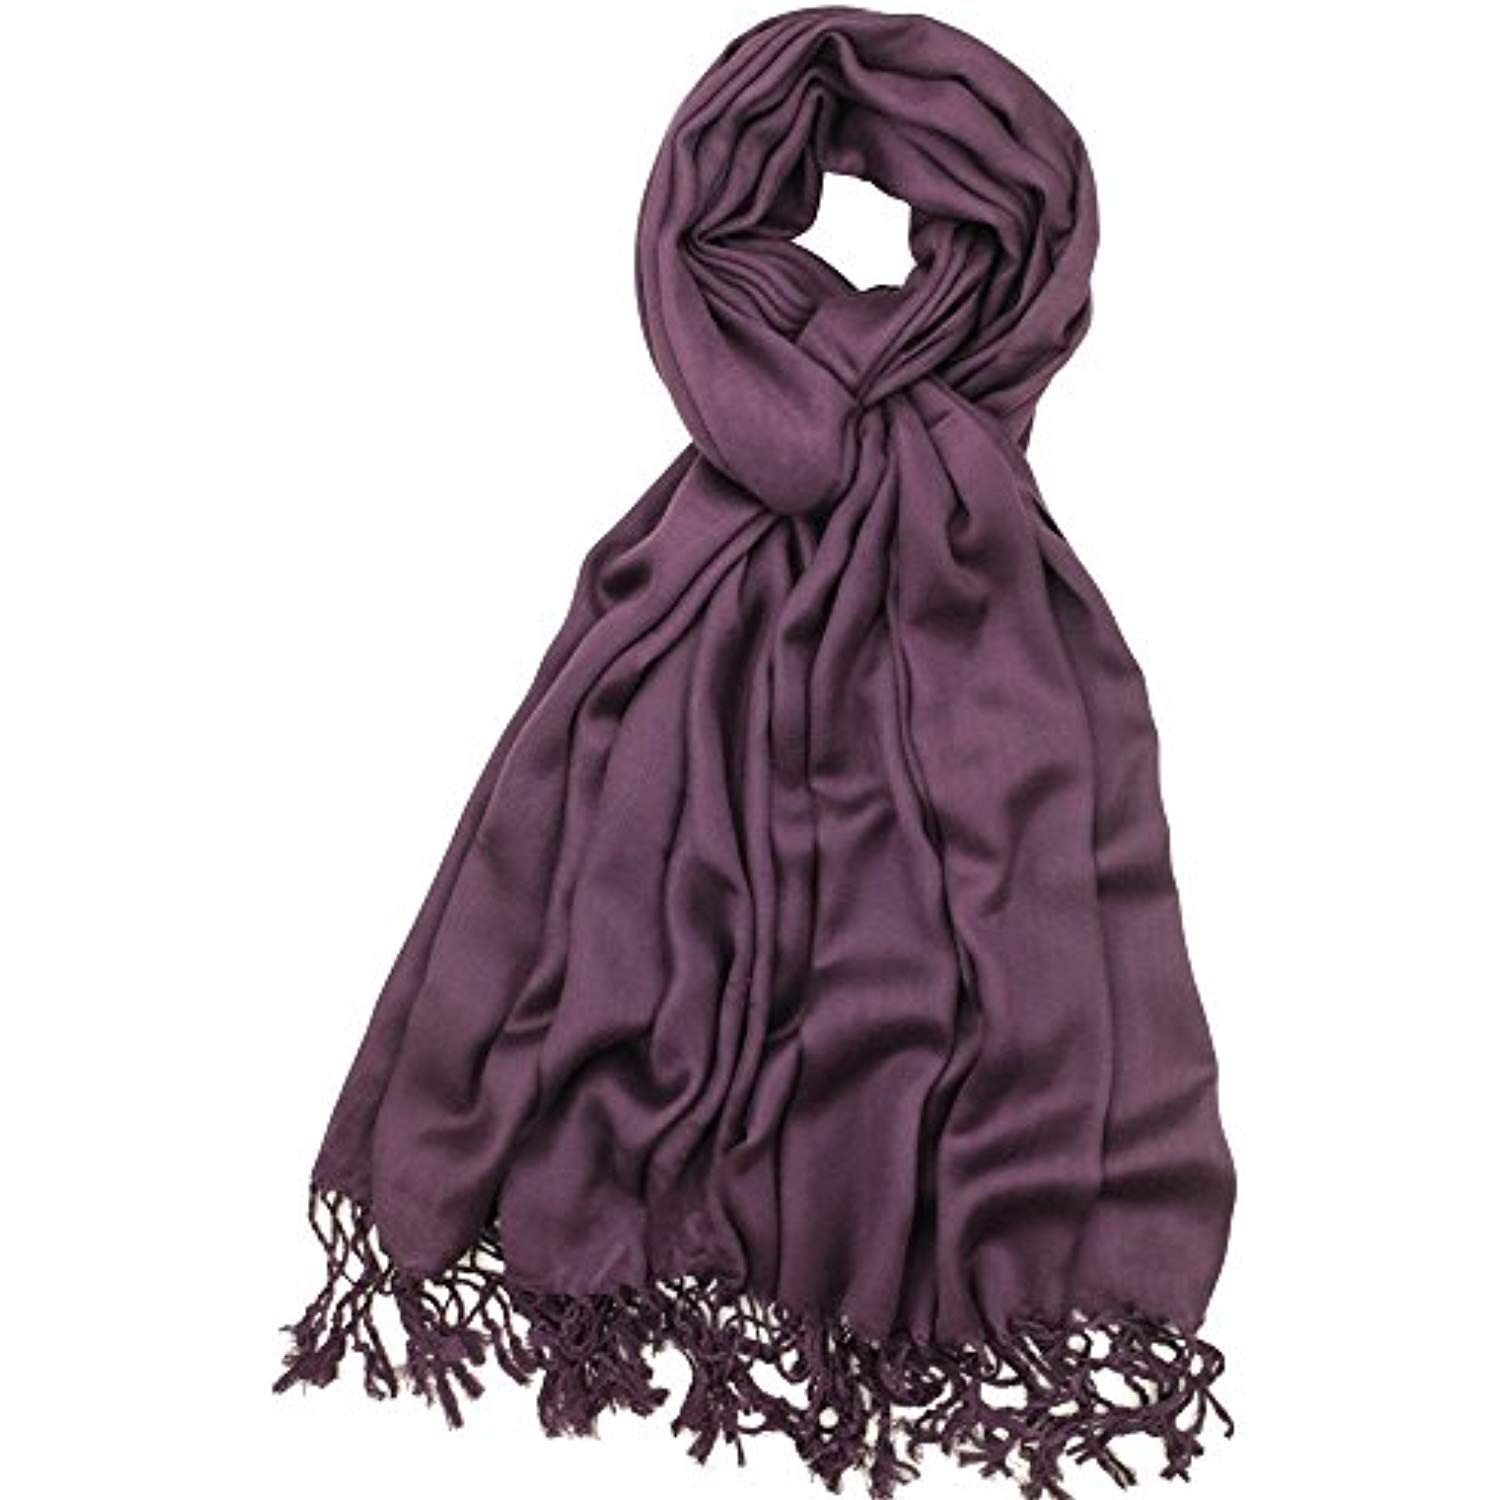 be801de14bf9d Super Soft Luxurious Satin Look Pashmina Shawl Wrap Scarf in Solid Colors  *** Check